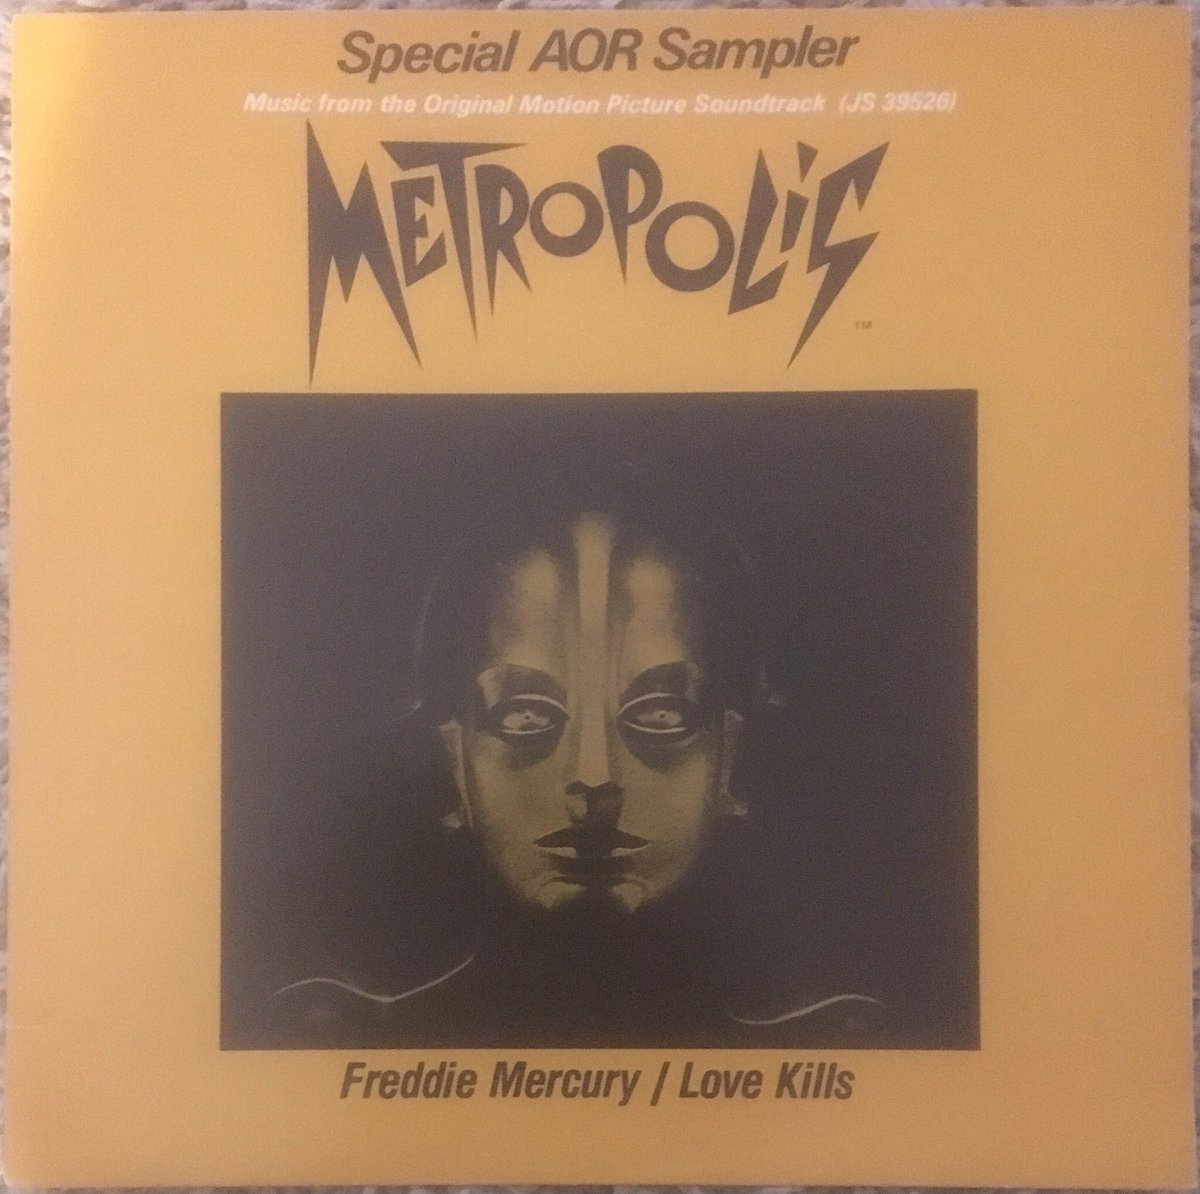 """230/ """"Love Kills"""": 12"""" USA Promo - """"Special AOR Sampler"""". I love this unique #Metropolis picture cover to promote the soundtrack to the film and the single. Same track both sides playing at 33 1/3rd  #Queen #FreddieMercury #BrianMay #JohnDeacon #RogerTaylor #FreddieFriday <br>http://pic.twitter.com/sOjel5BRw8"""